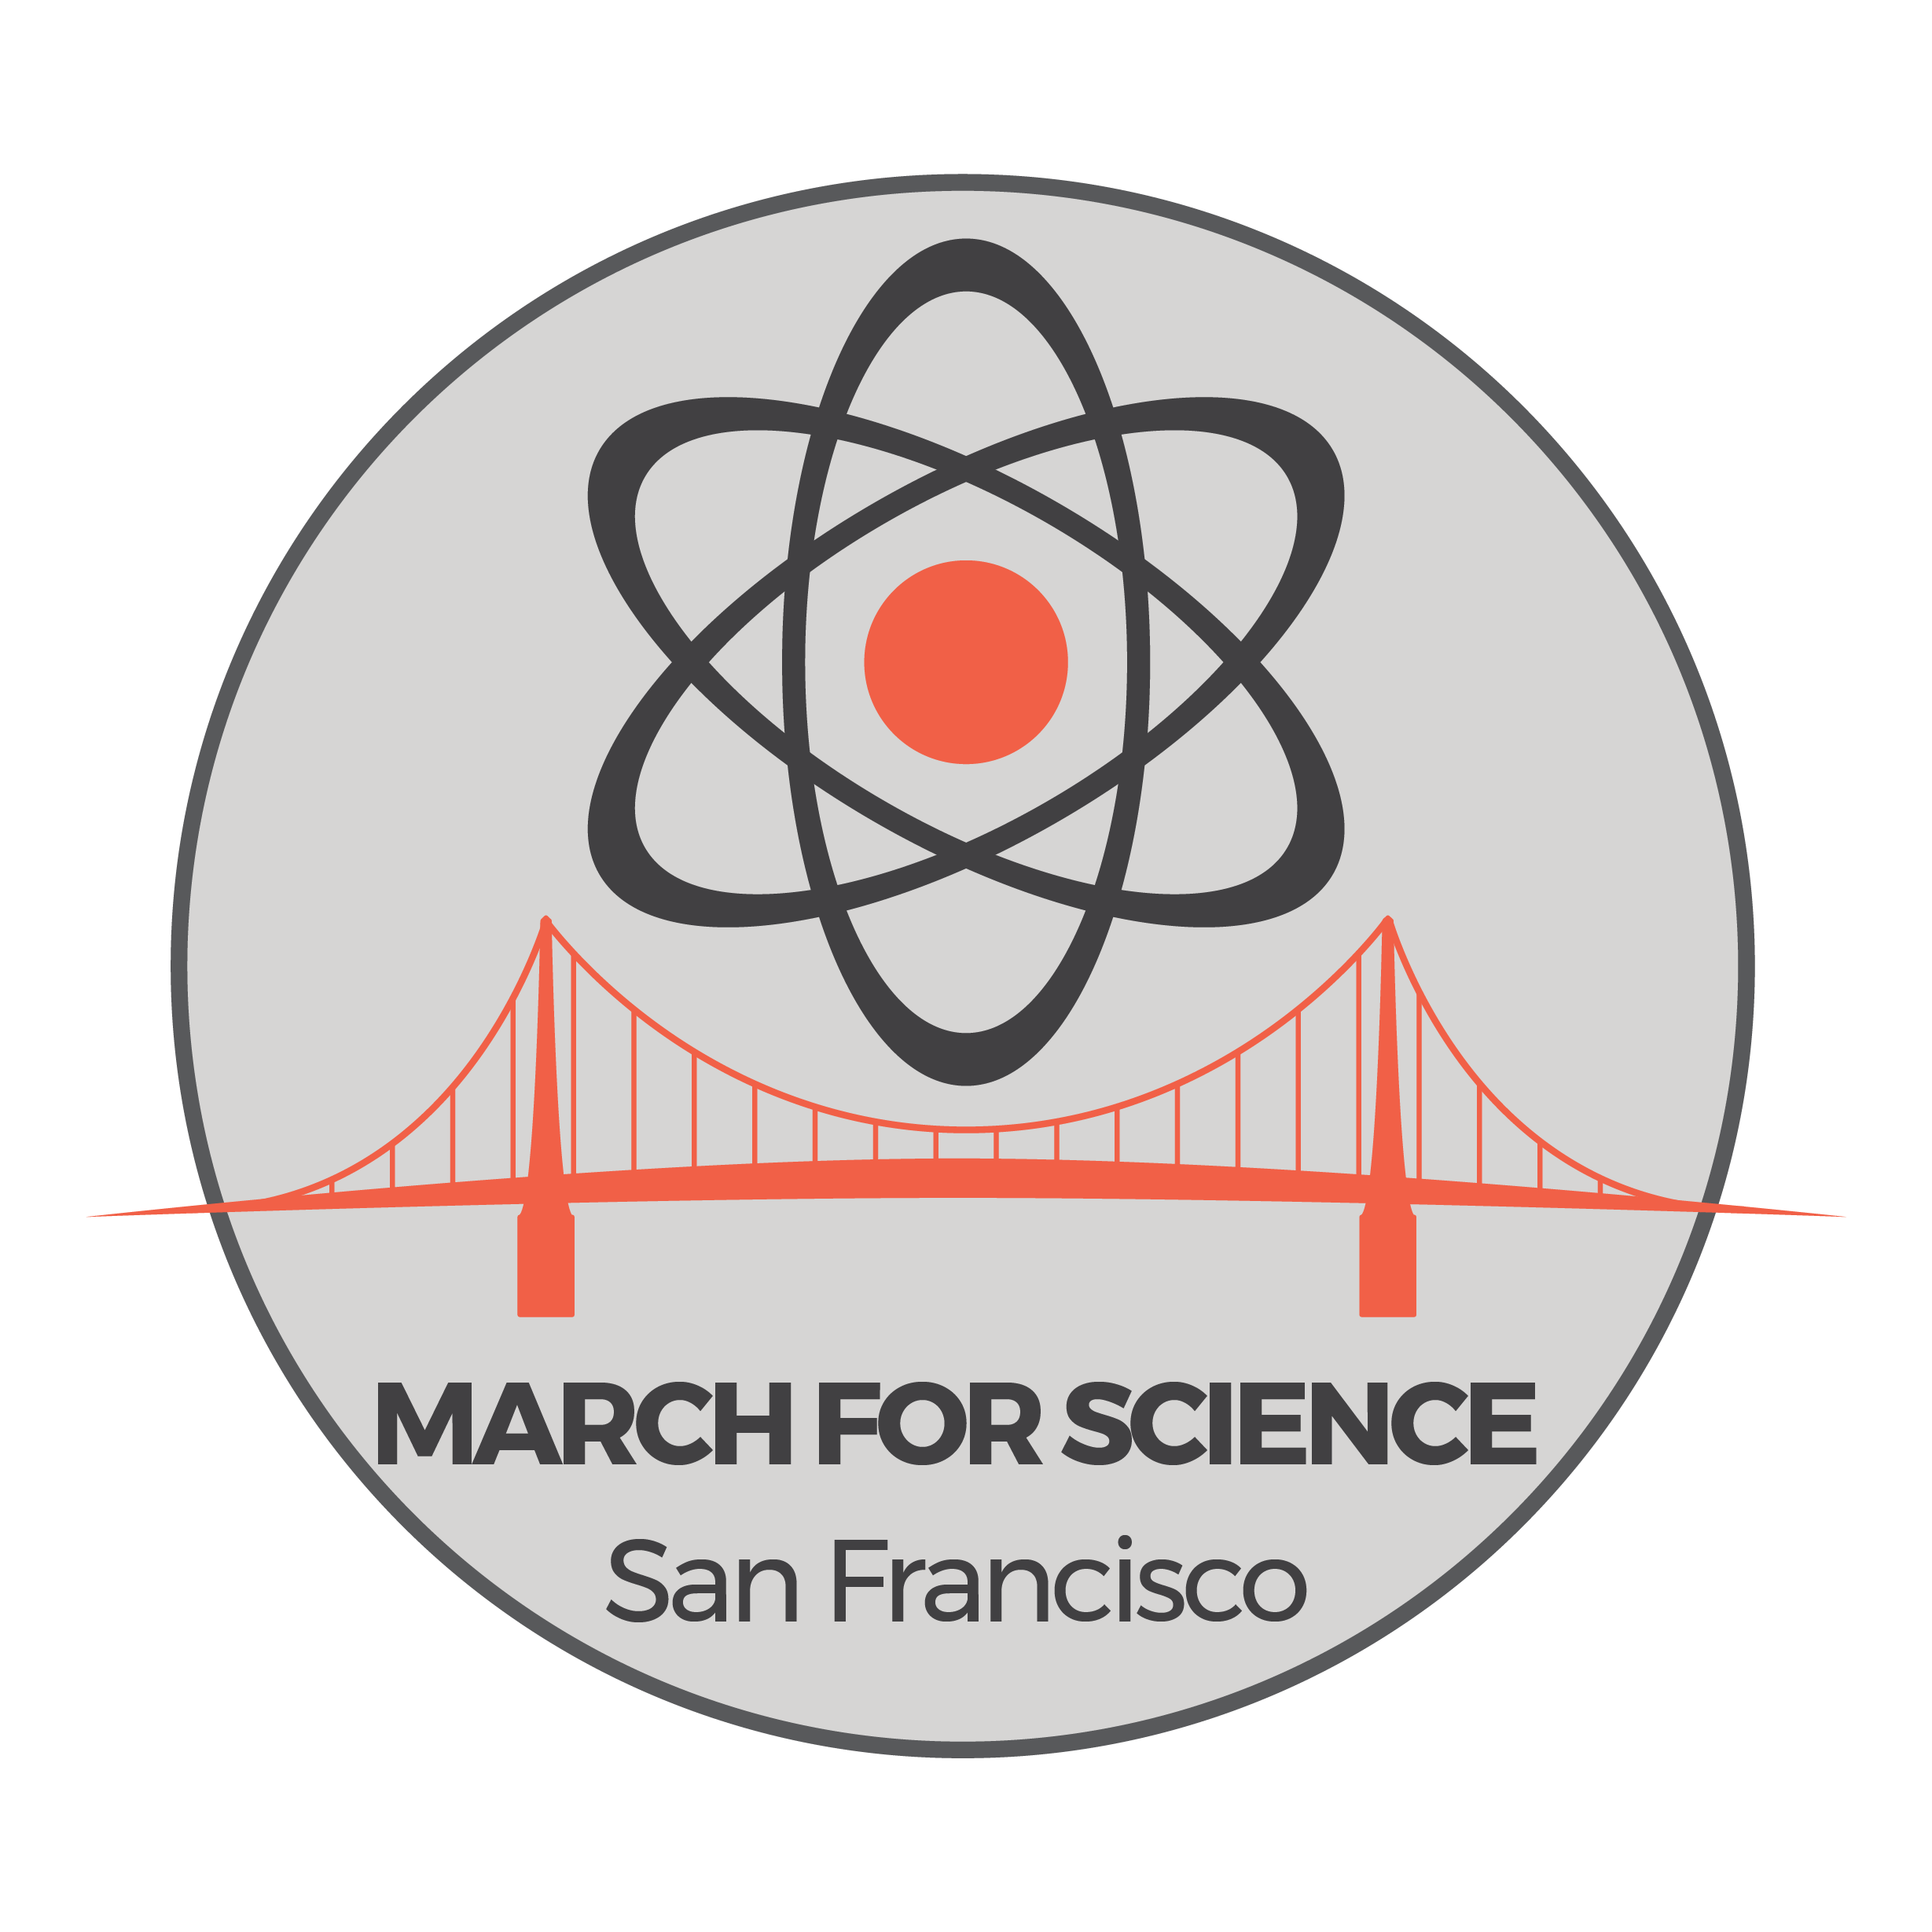 March for Science - San Francisco logo